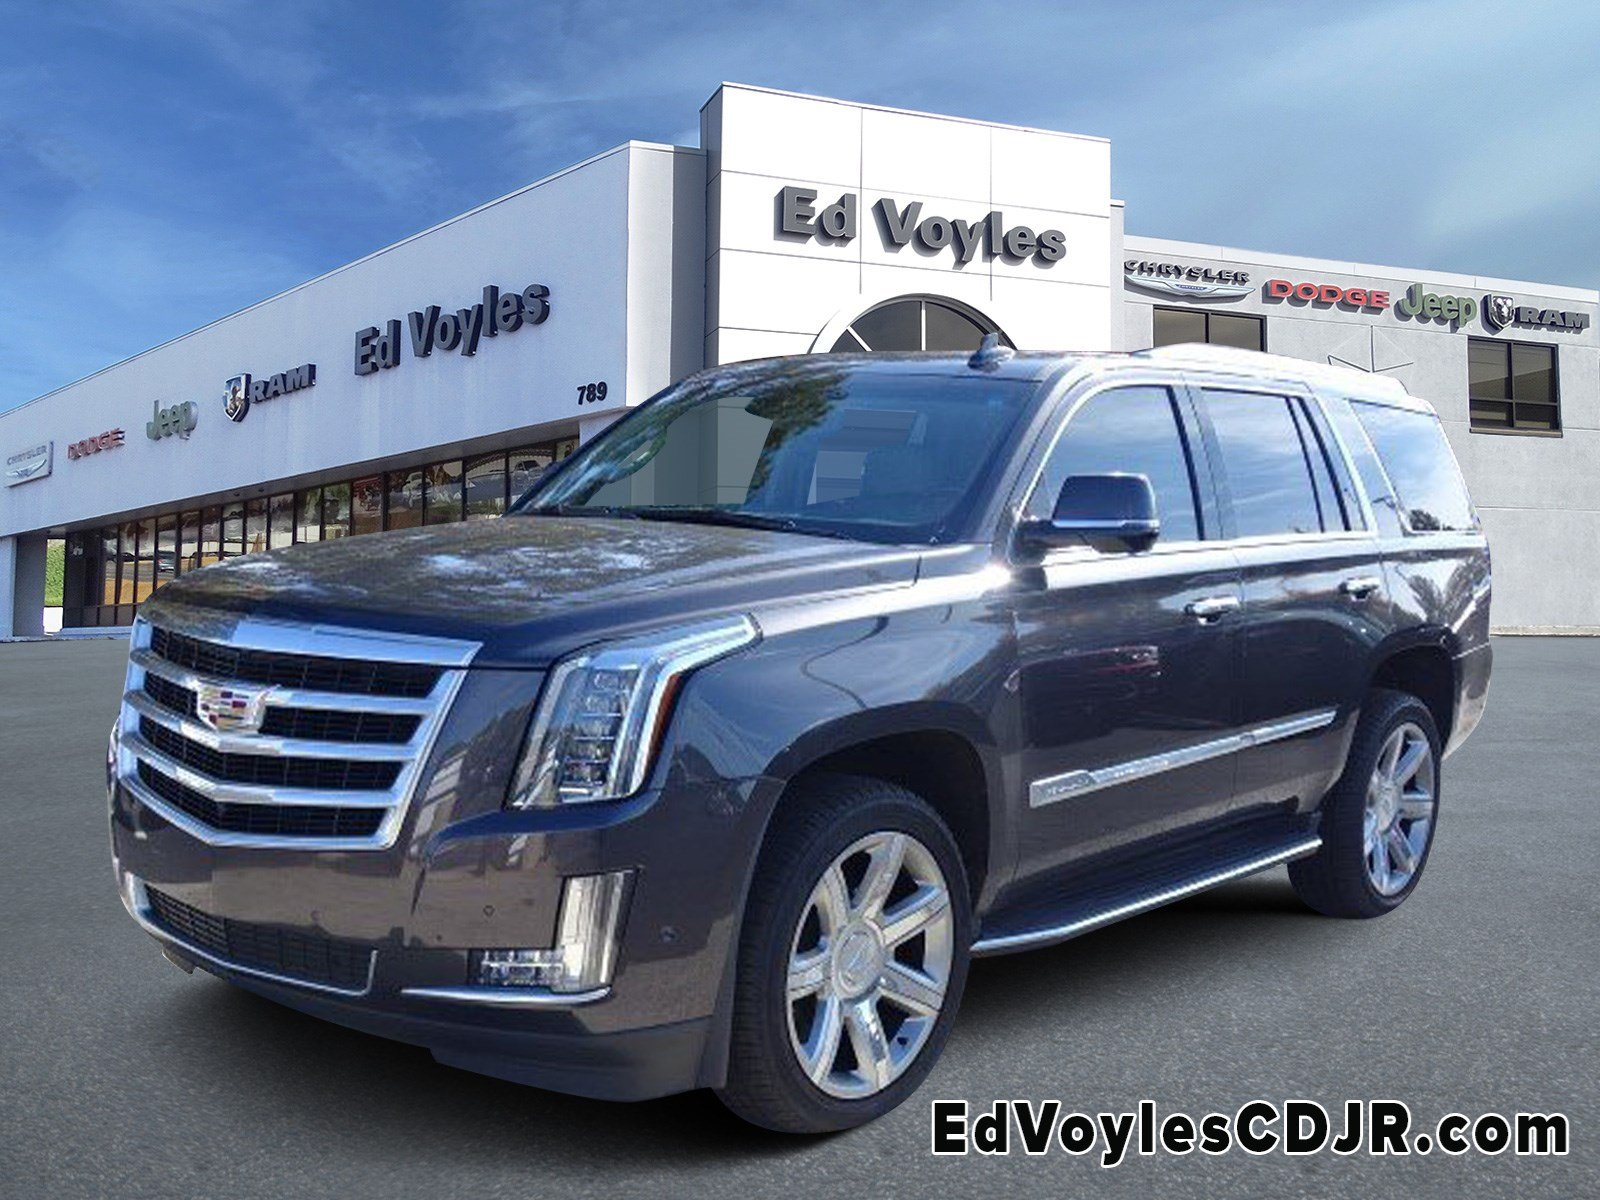 Surprising Pre Owned 2018 Cadillac Escalade Luxury Rwd Sport Utility Dailytribune Chair Design For Home Dailytribuneorg